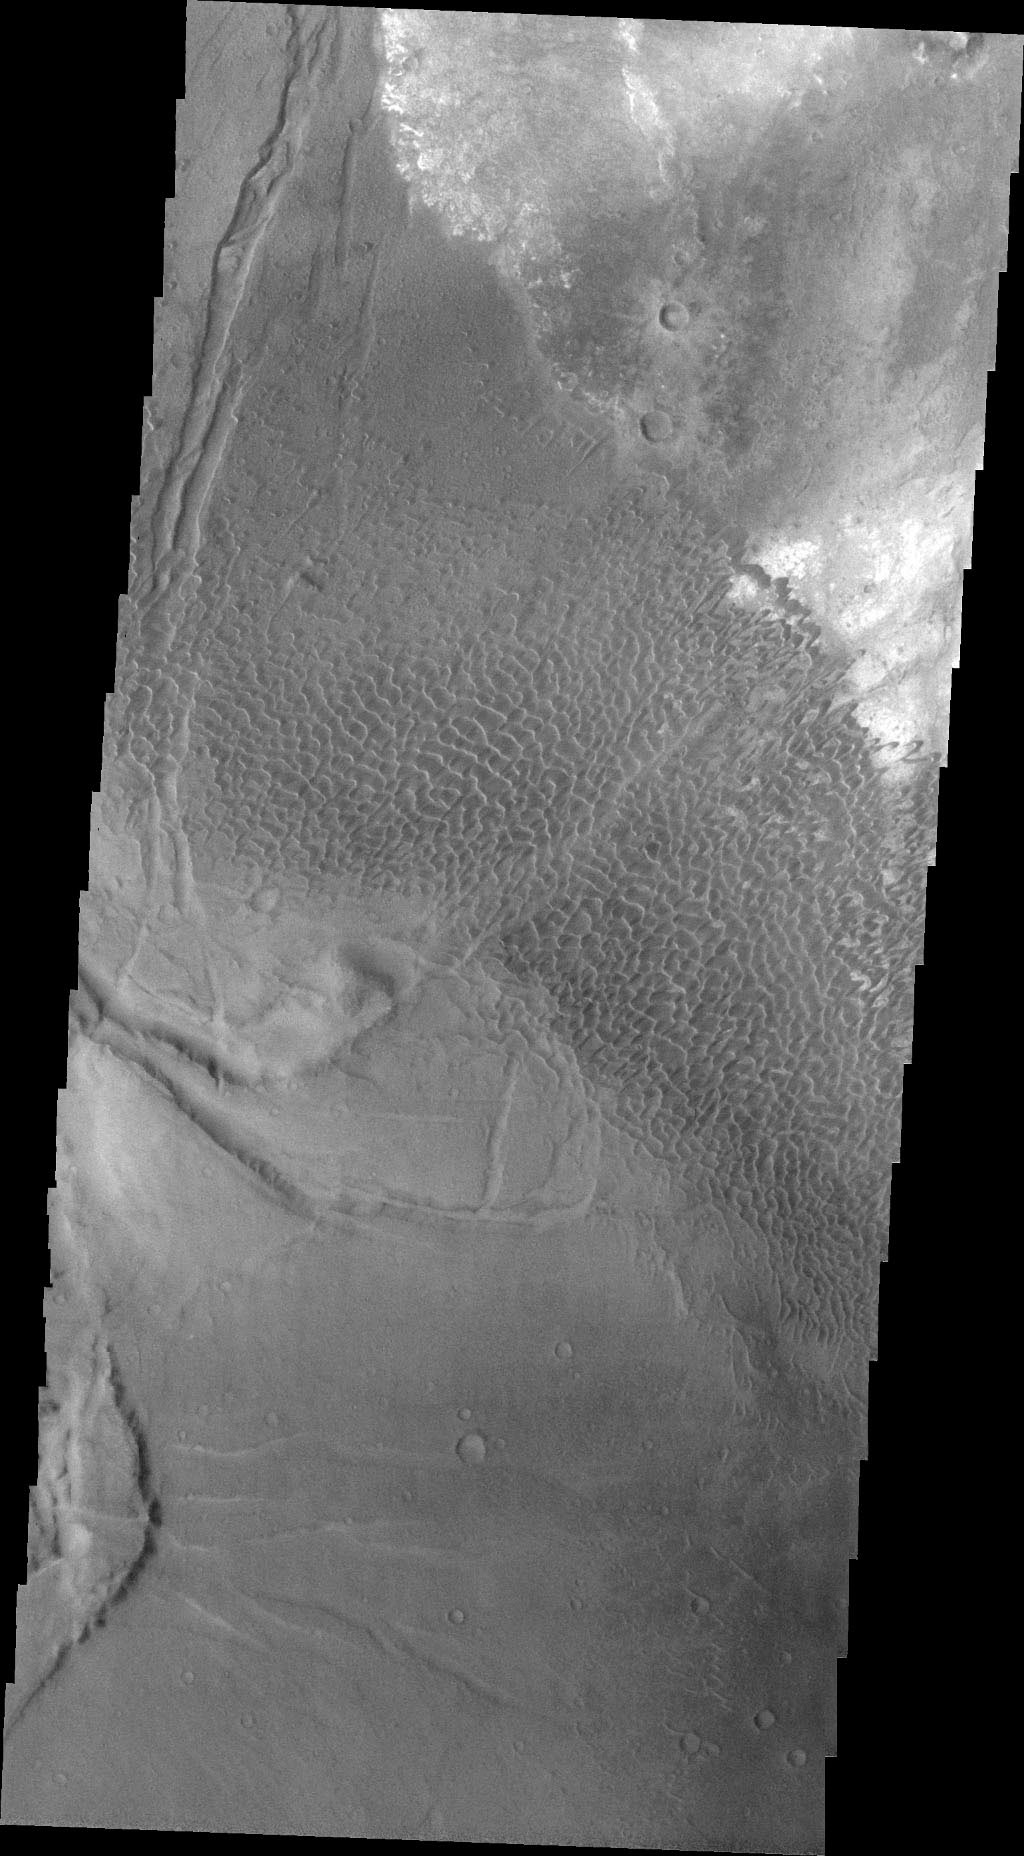 This image captured by NASA's 2001 Mars Odyssey spacecraft shows part of the Nili Patera dune field. The paterae are calderas on the volcanic complex called Syrtis Major Planum.